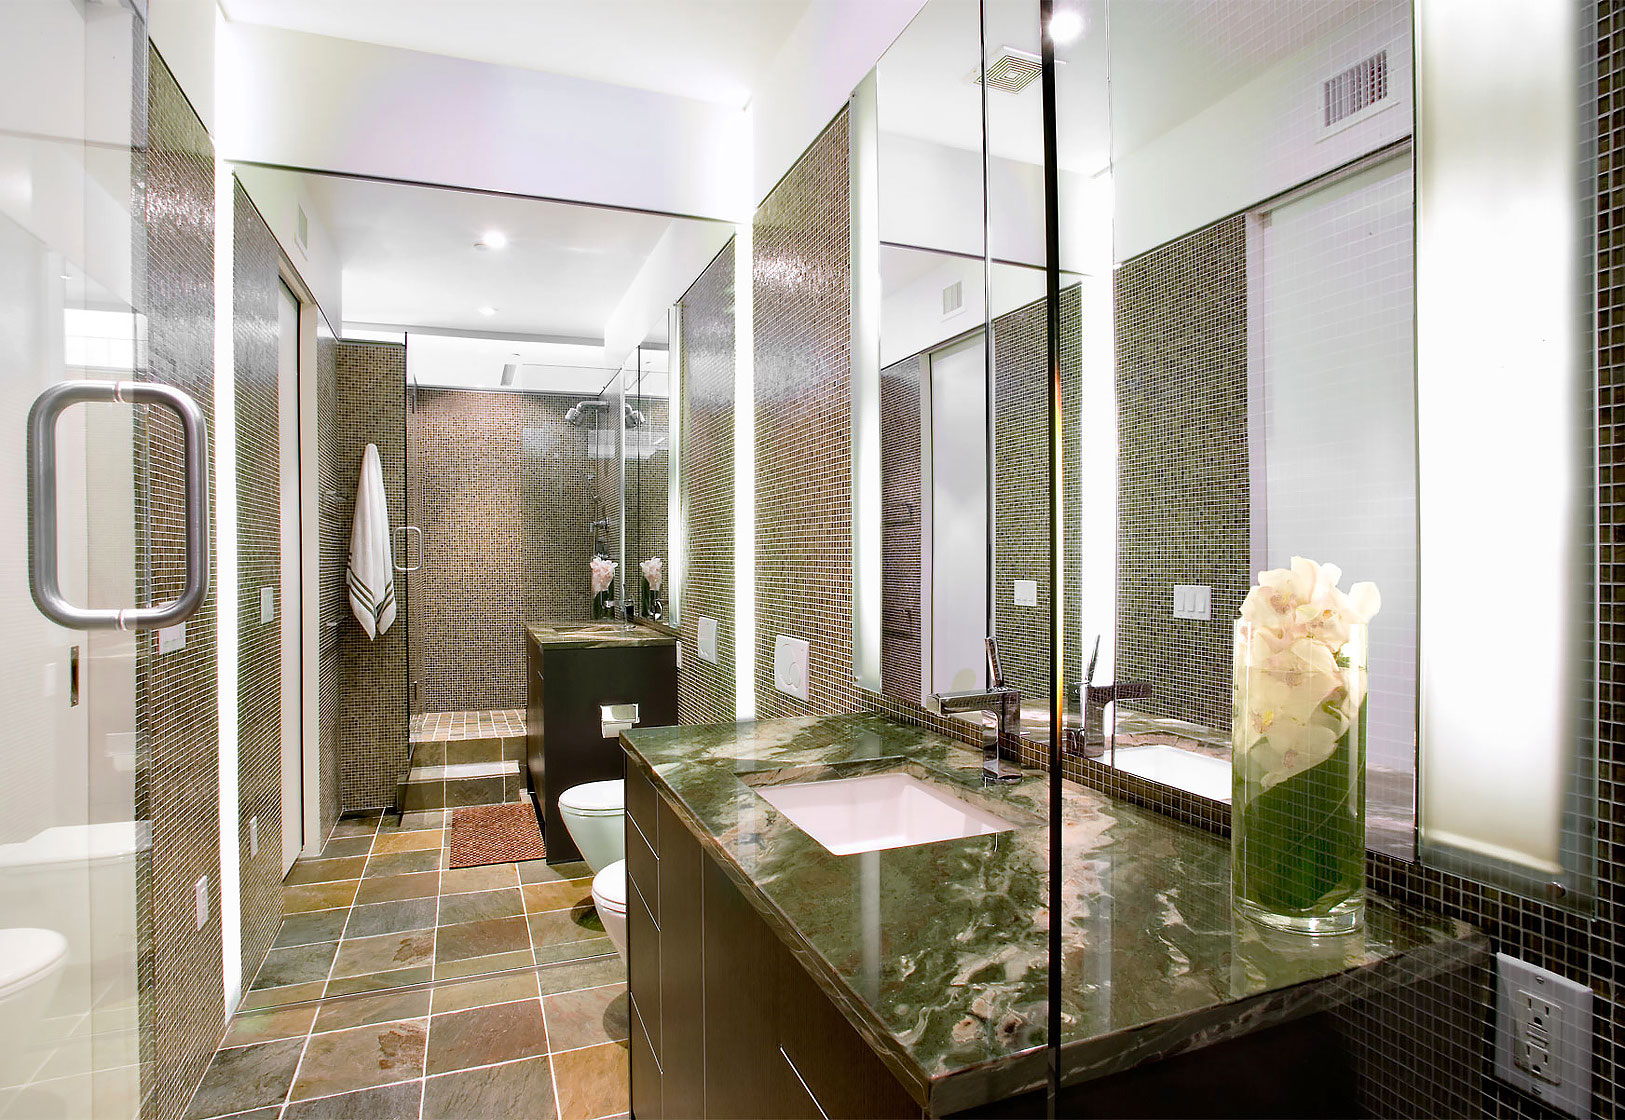 Editorial photography of modern style bathroom with mirror wall, glass shower and green granite countertops by Phoenix commercial photographer Jason Koster.